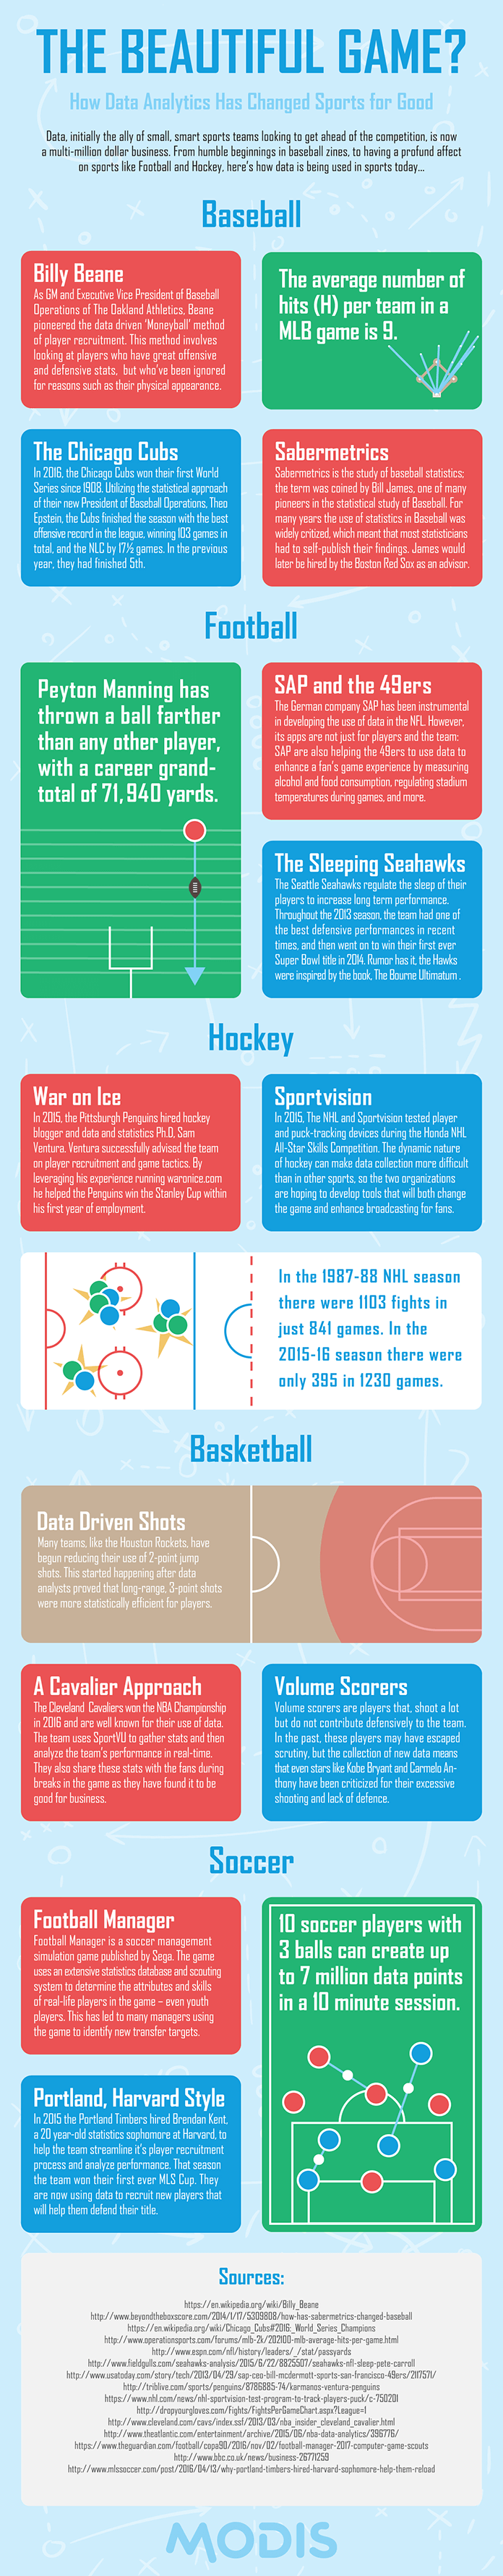 Infographic The Beautiful Game How Data Analytics Has Changed